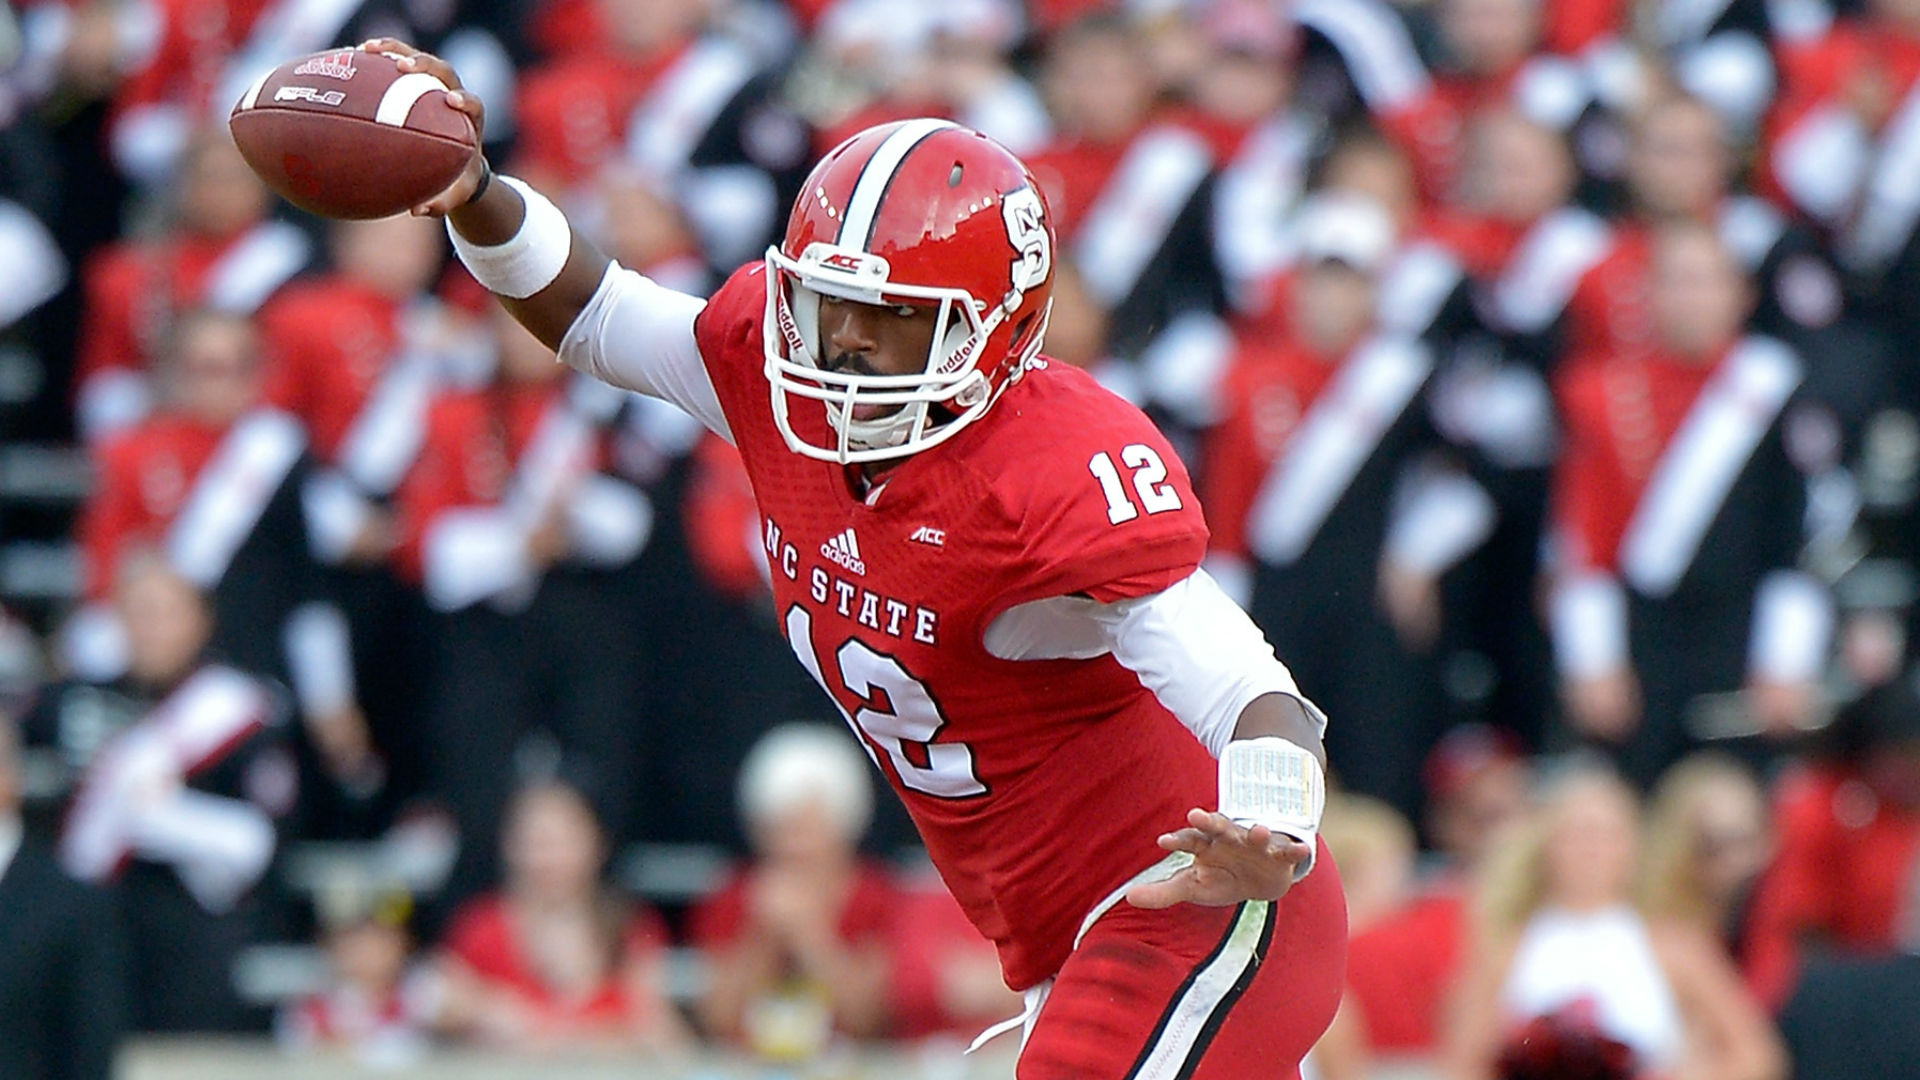 N.C. State vs. UCF betting lines and pick - Knights laying points in St. Petersburg Bowl